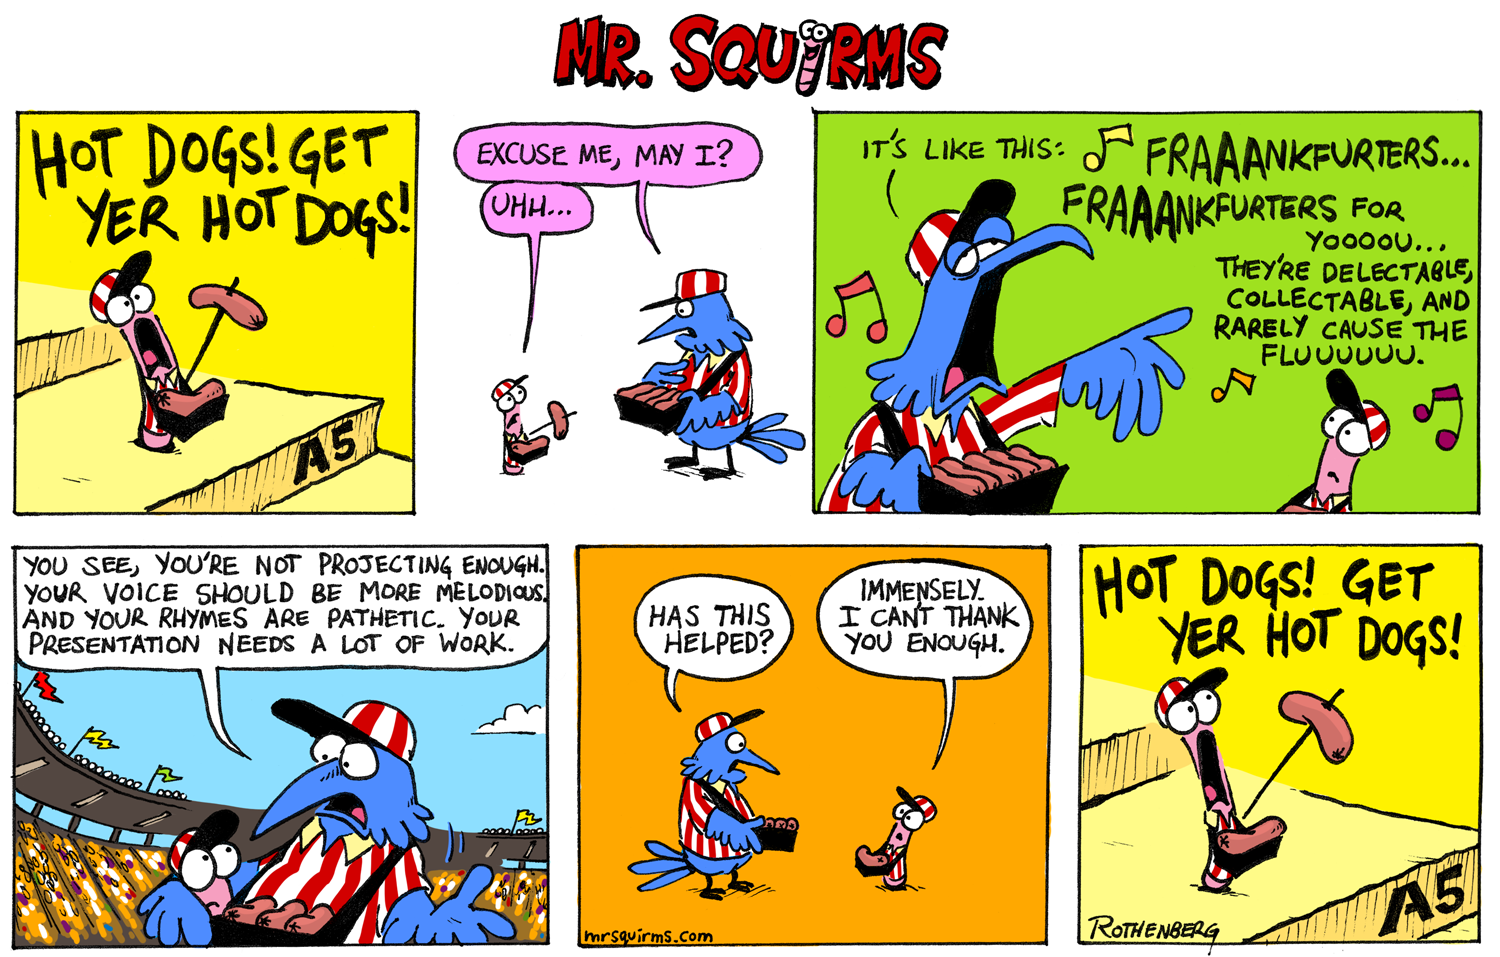 Squirms008_sunday_logo.png